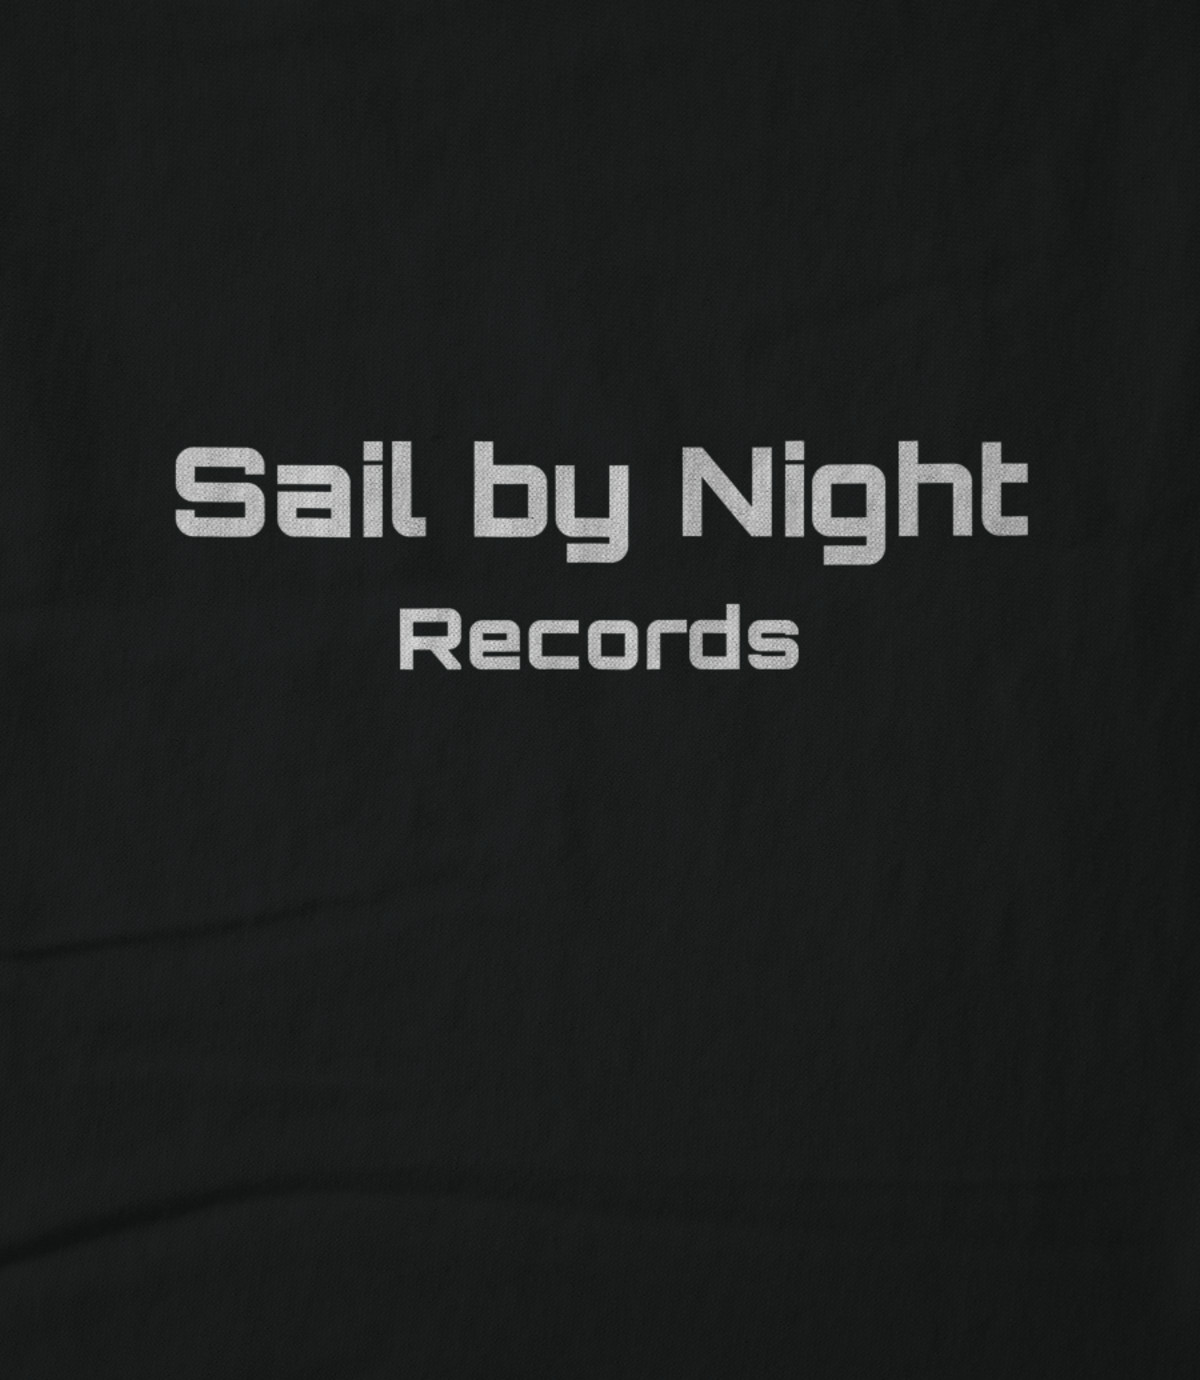 Sail by night sail by night records 1545264676